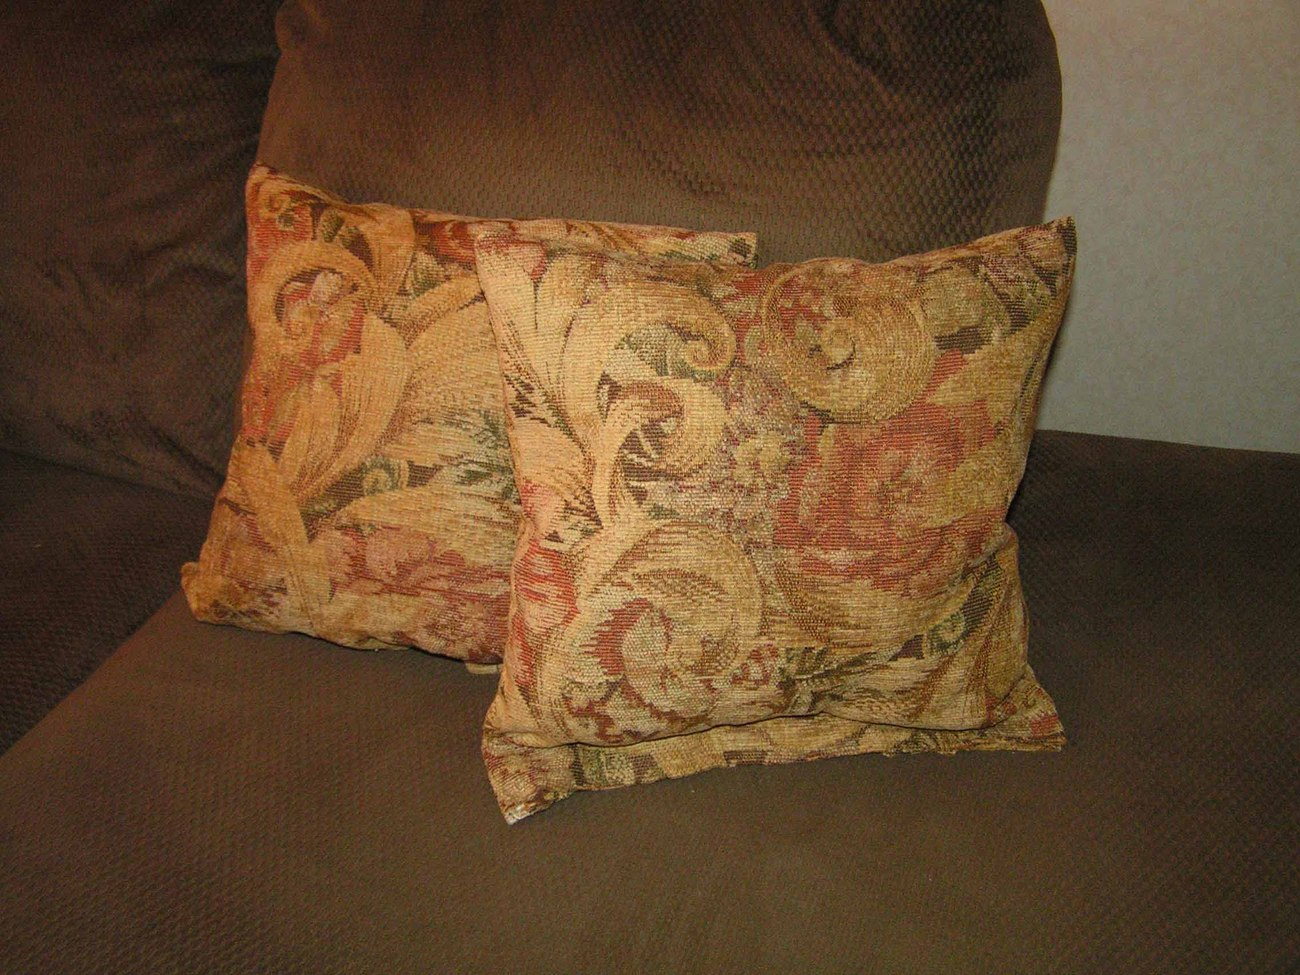 2 chenille pillows size 18 x 18 great for sofa or bed heavy weight material